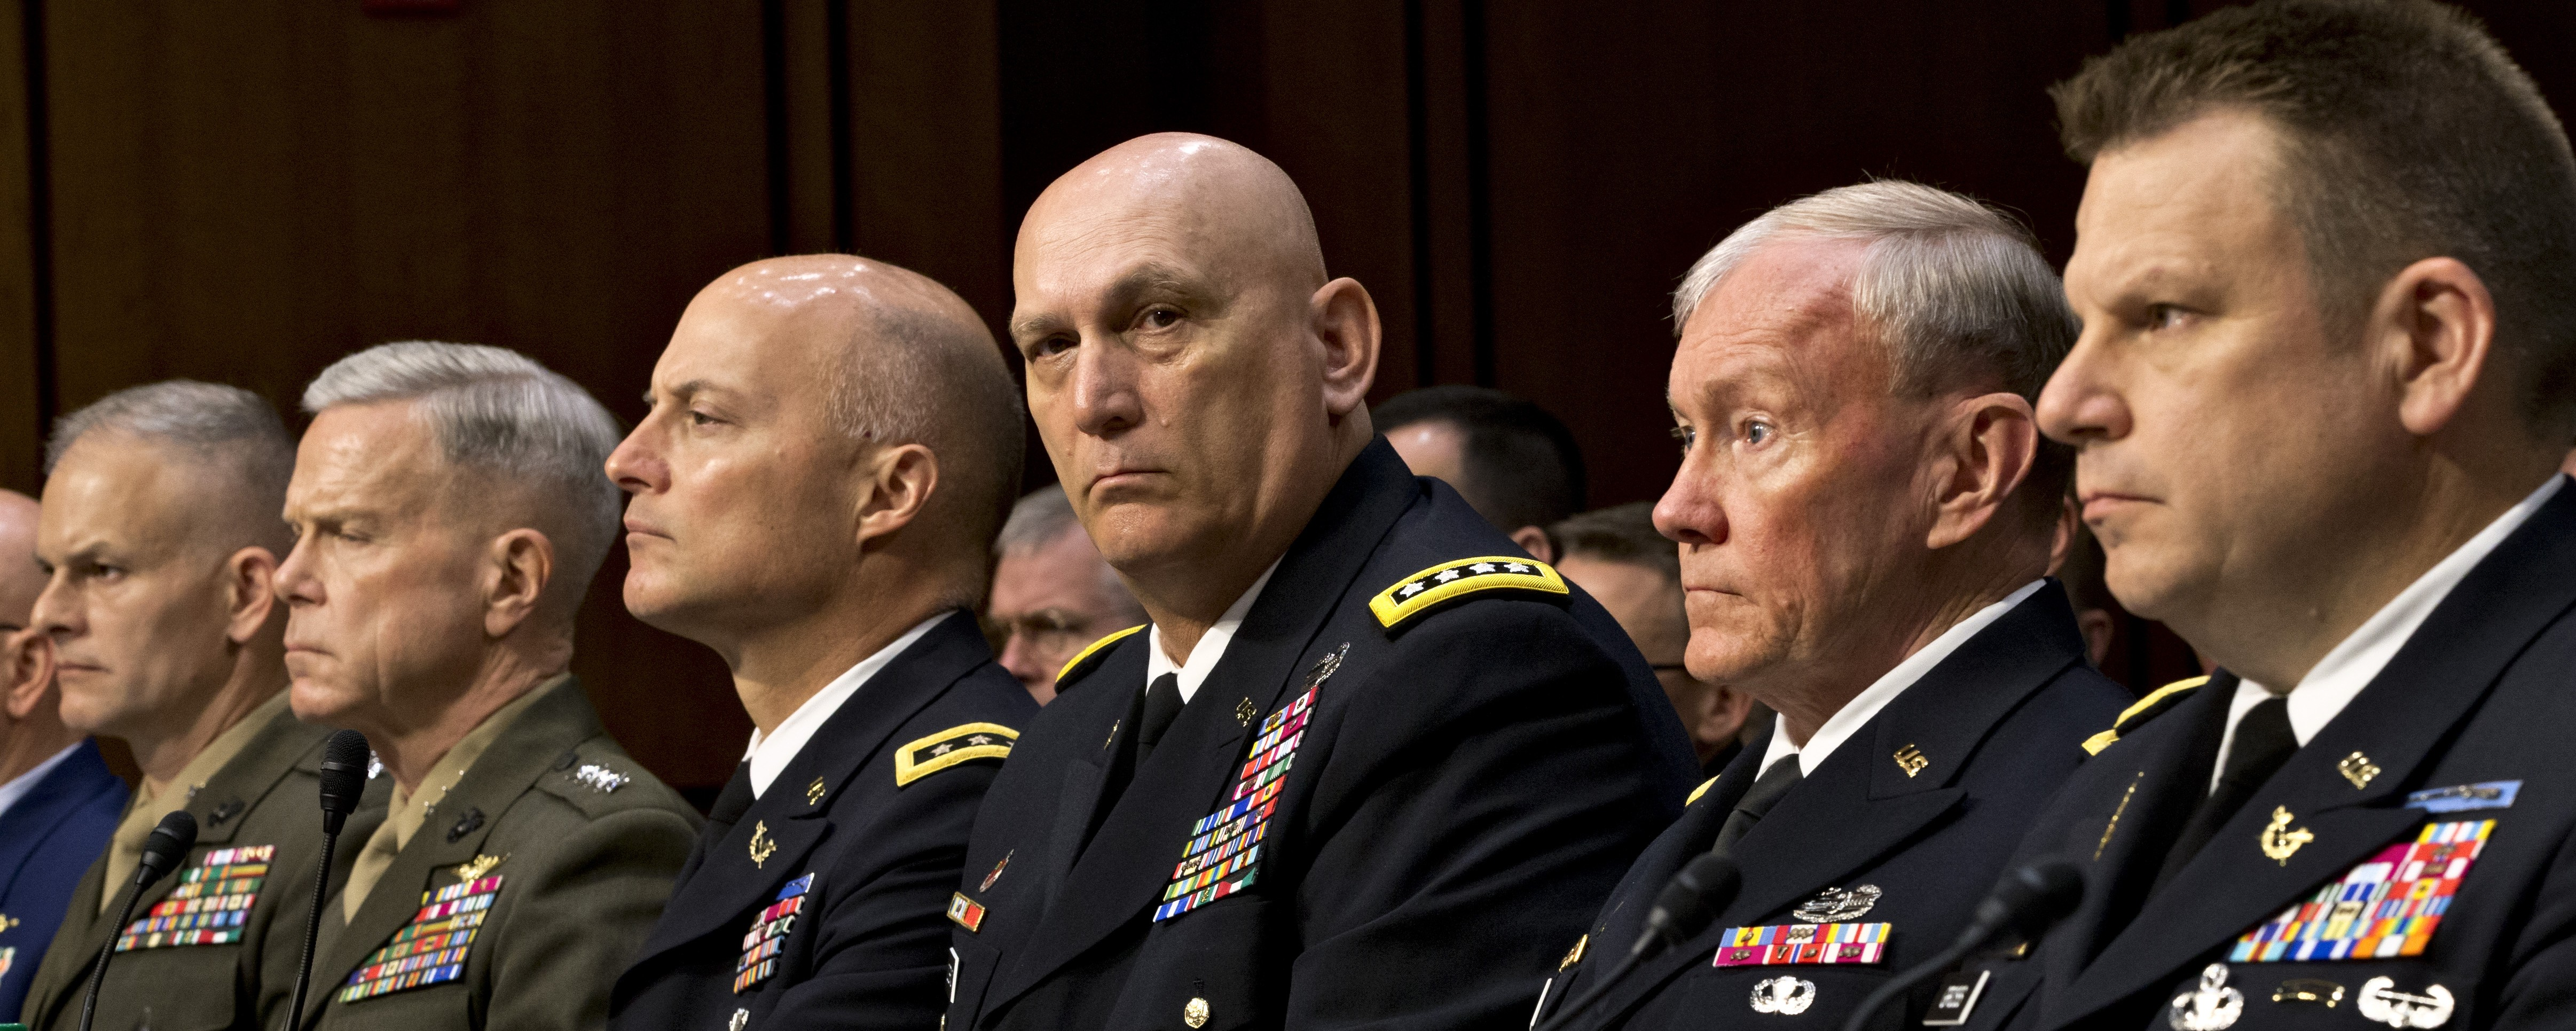 Outgoing US Army Chief Urges Considering Boots on the Ground In Islamic State Fight